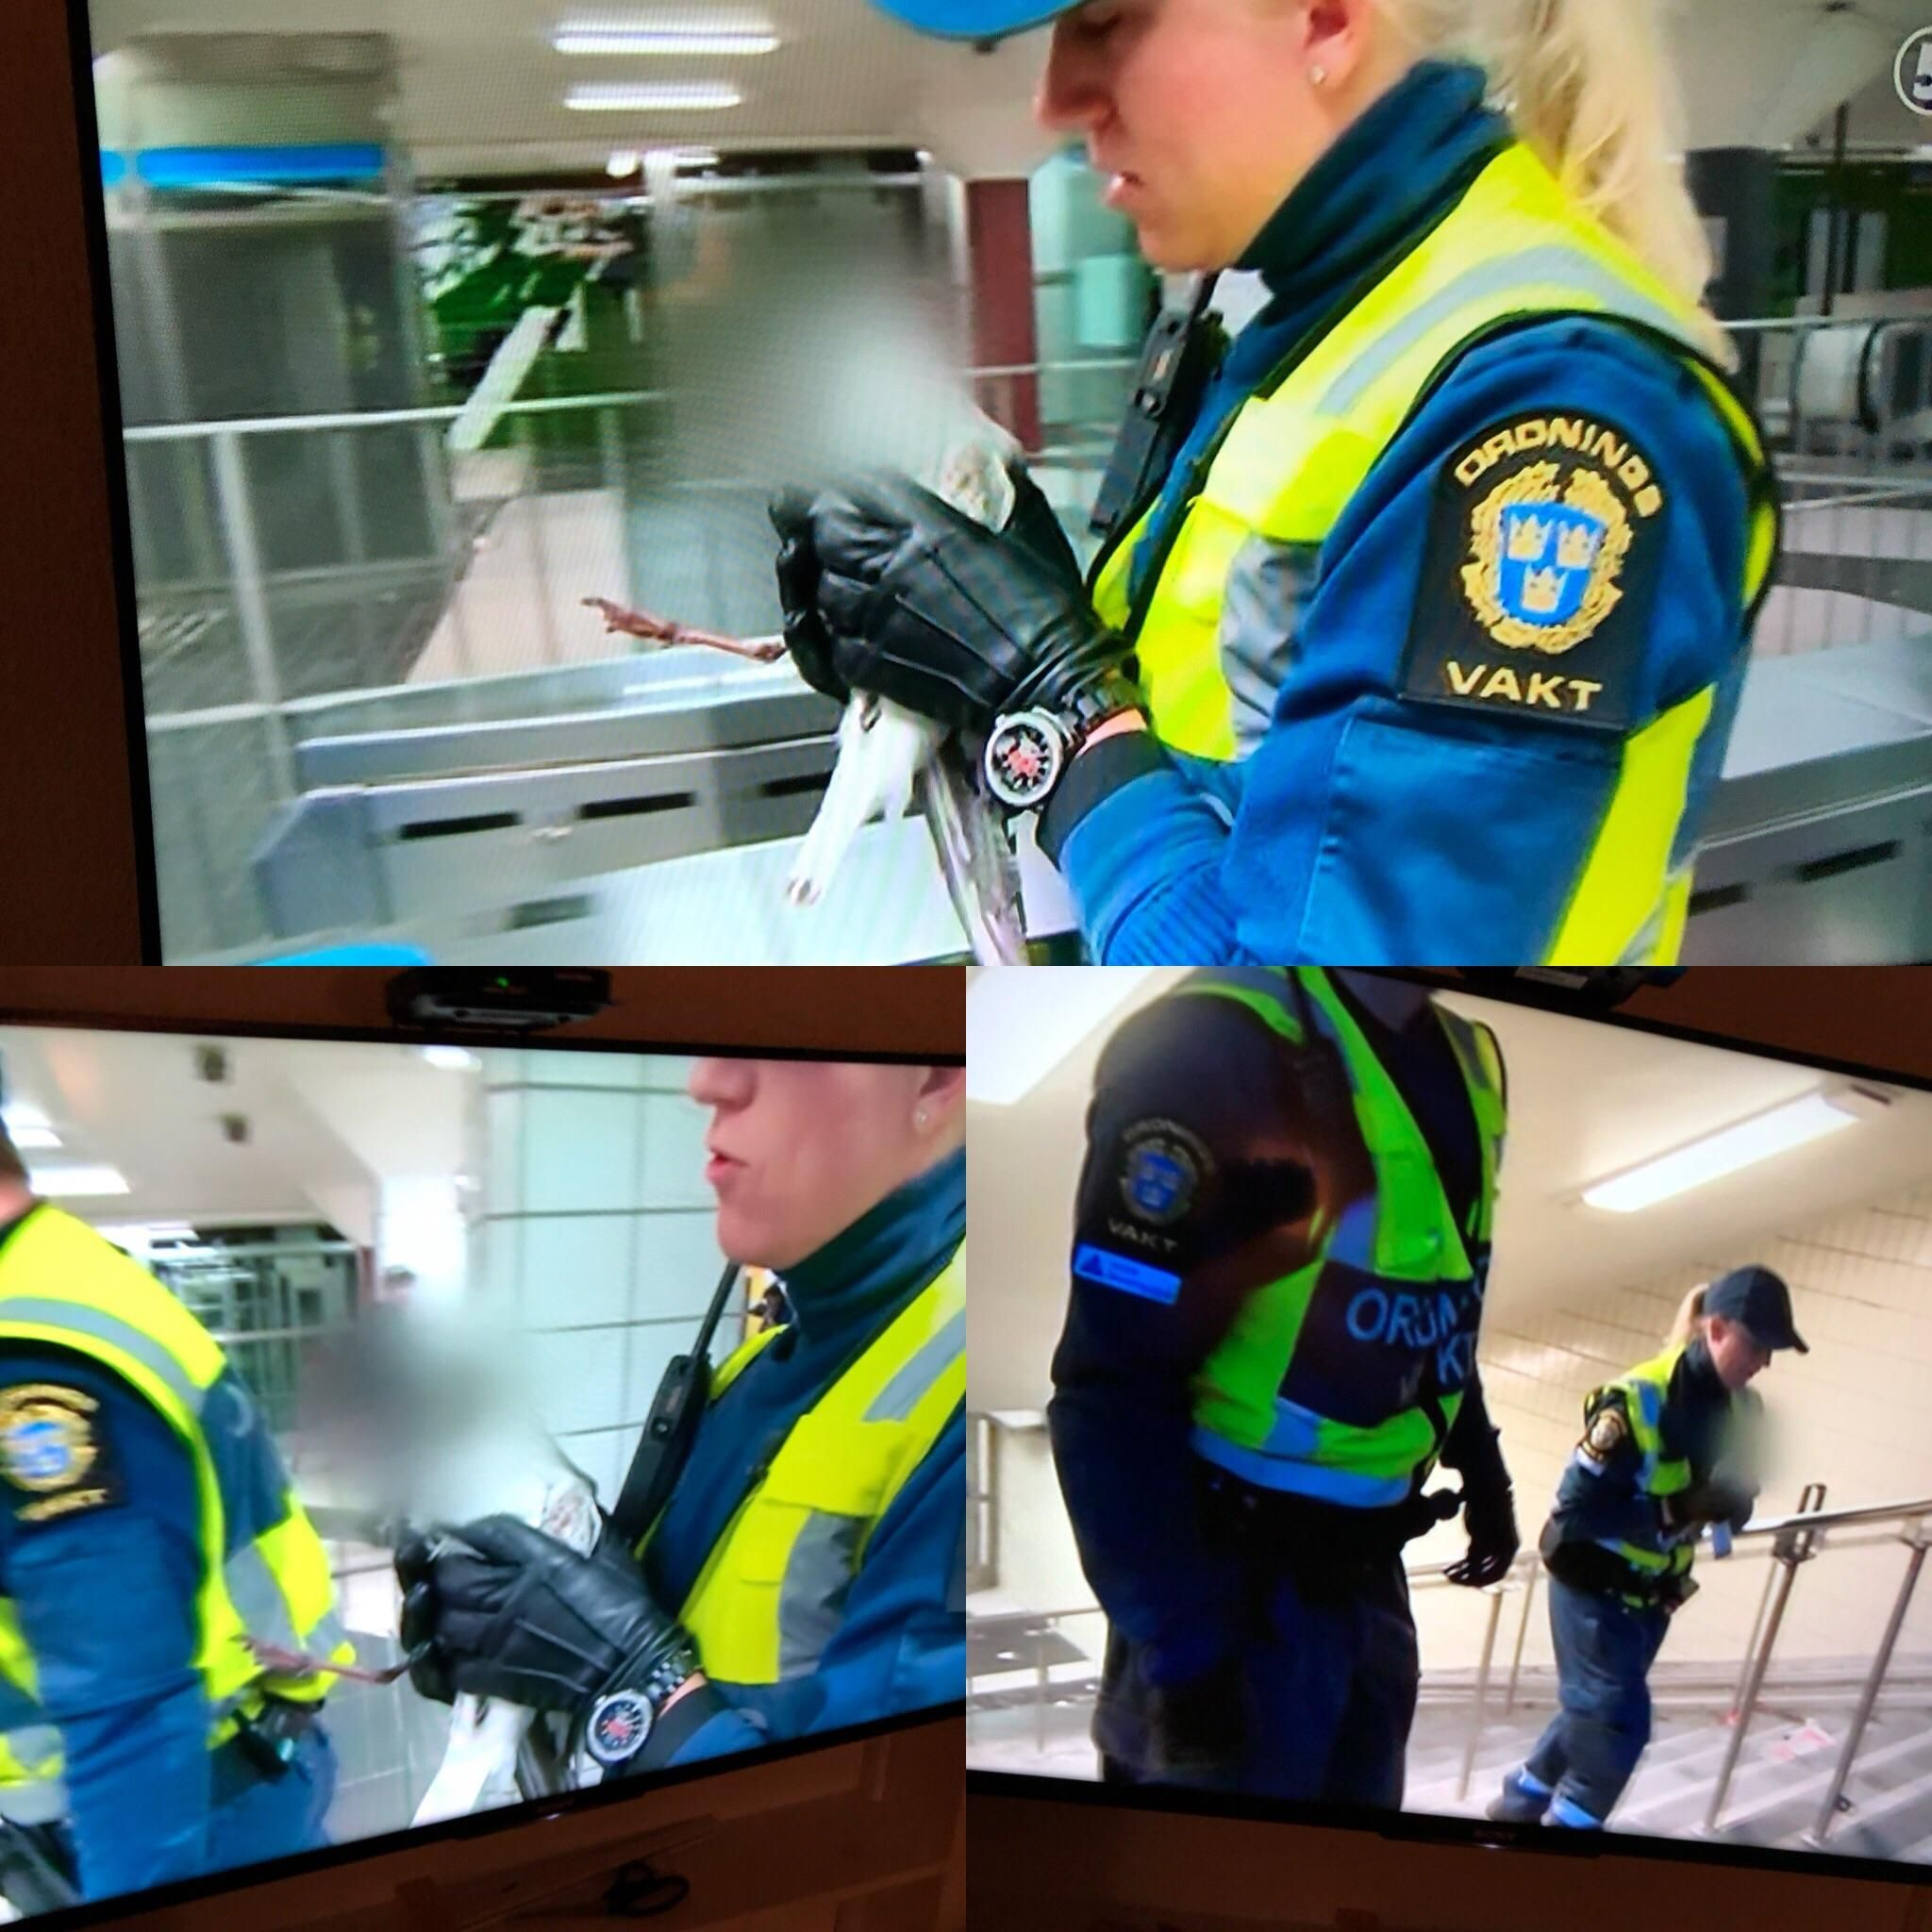 Swedish television channel decided to protect the identity of a seagull that was saved from the subway